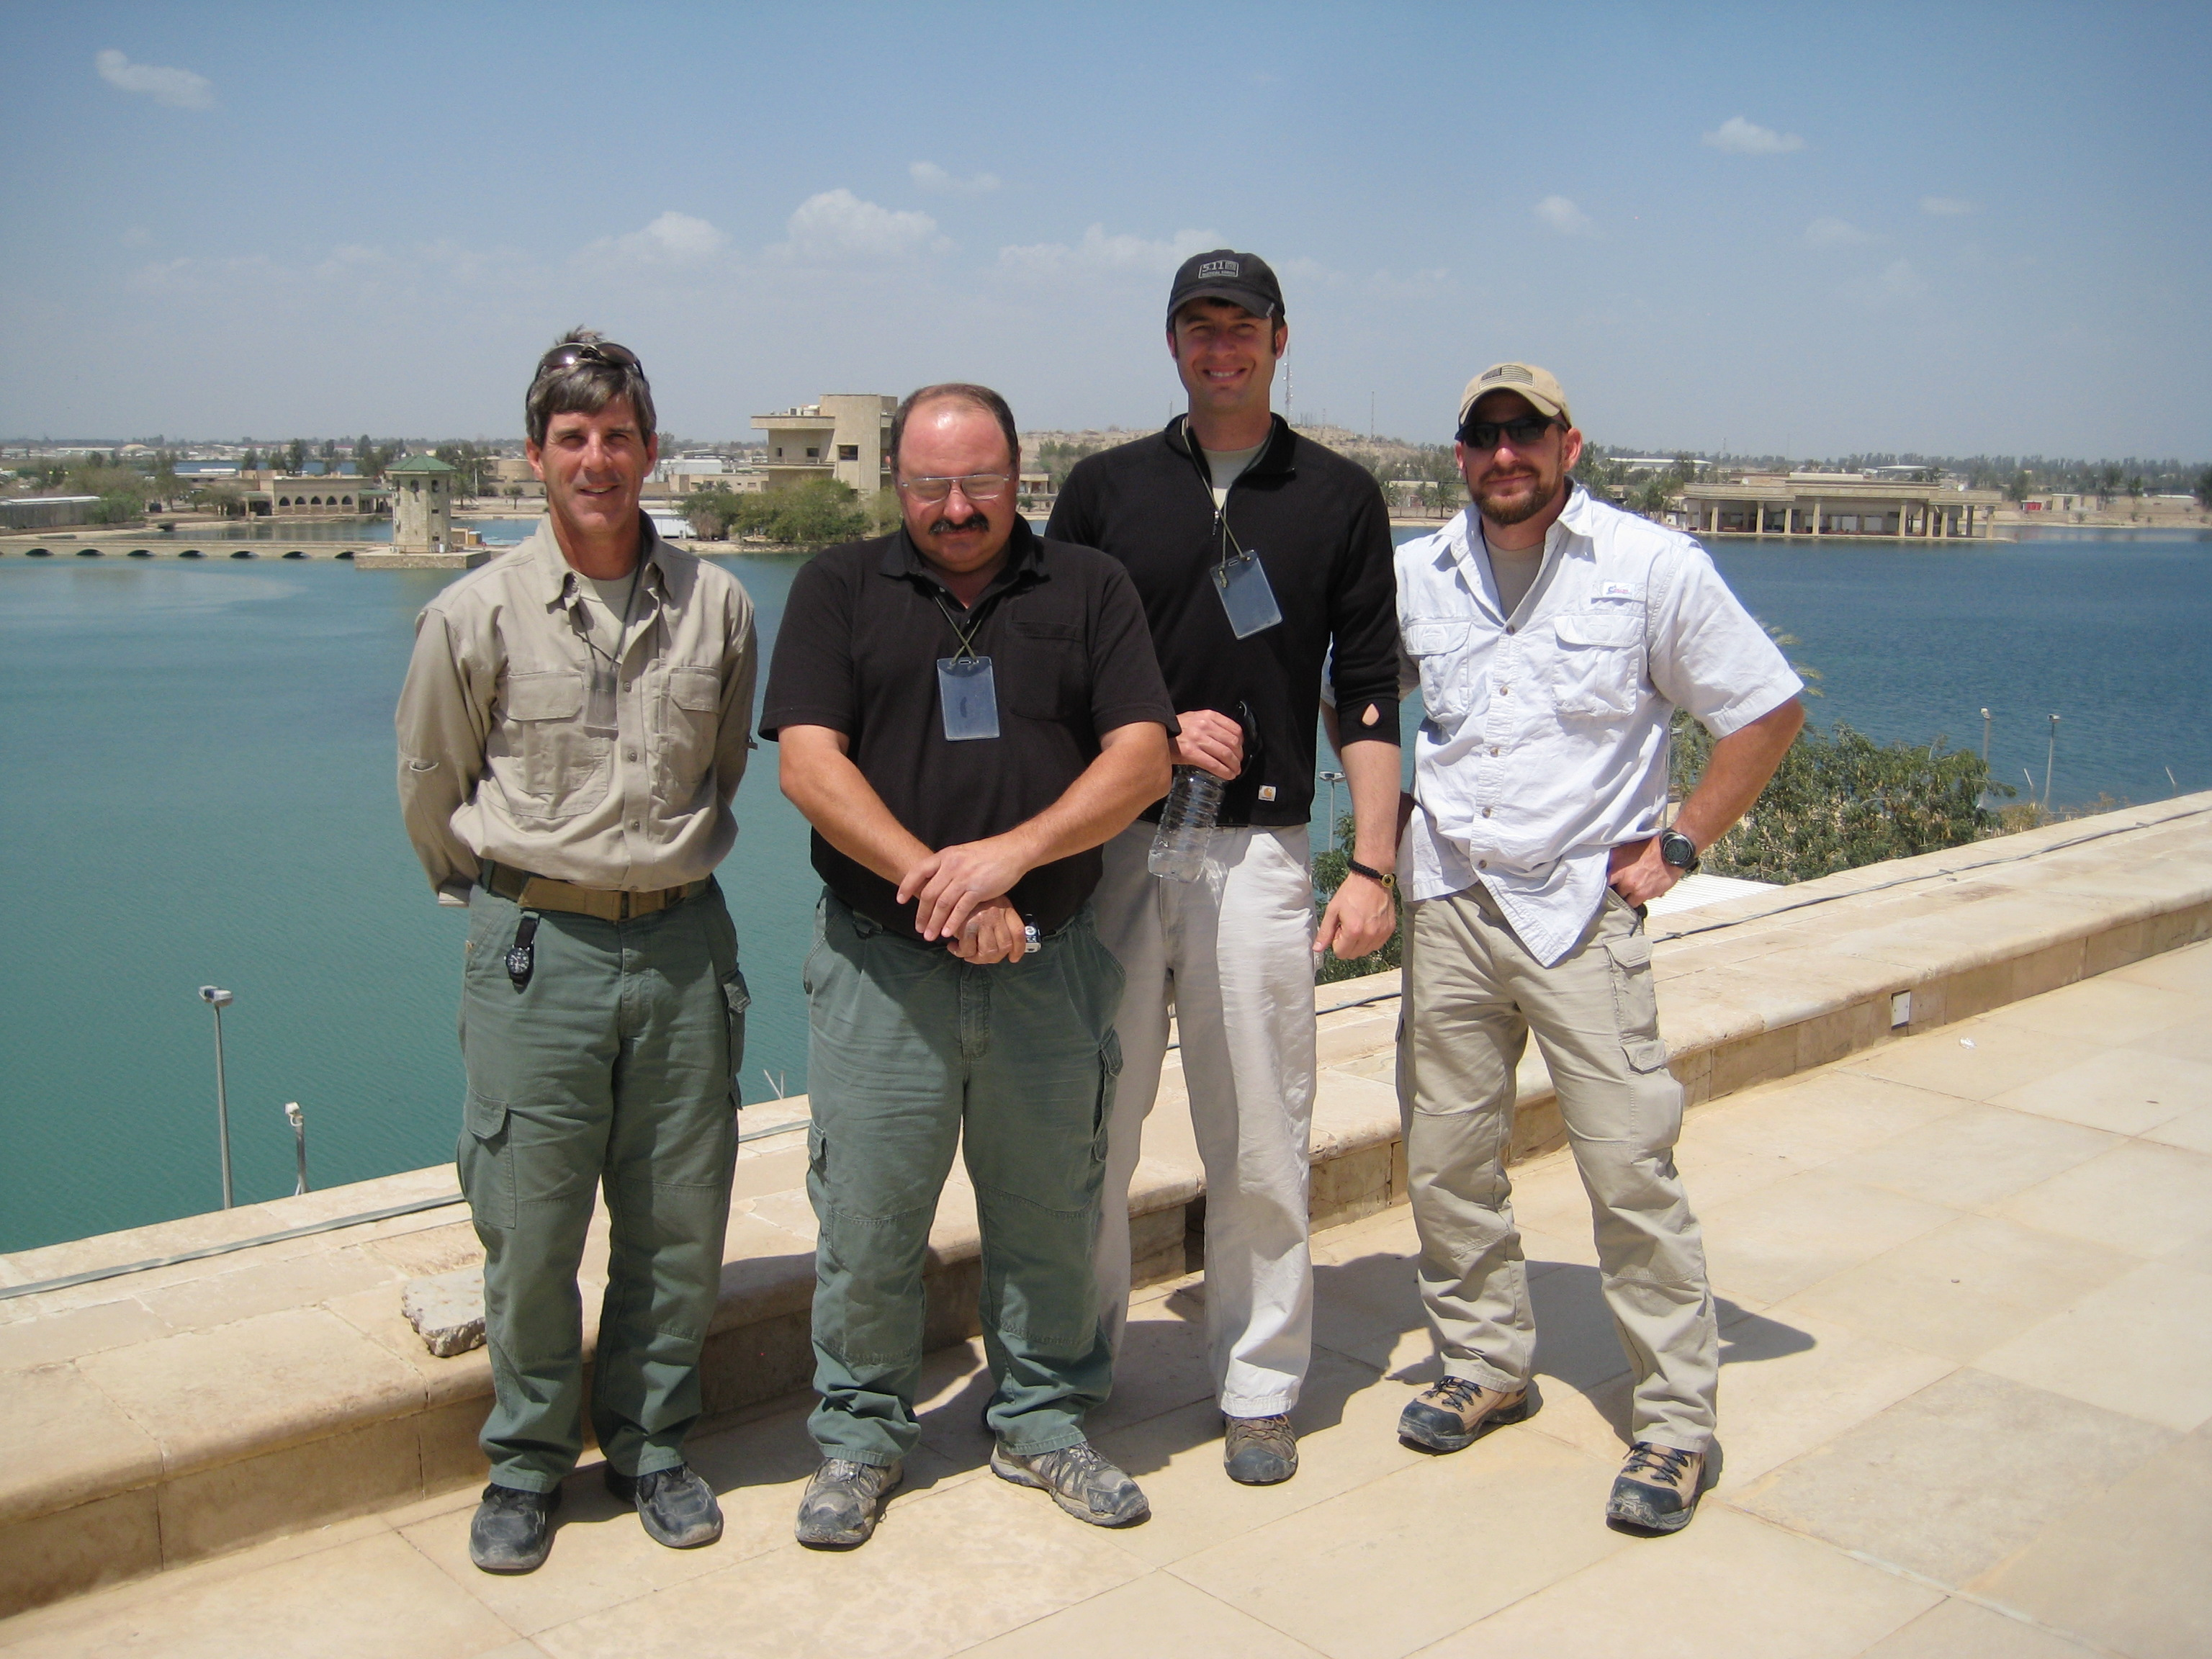 Driving instructors (from L to R) Peter Zekert; Don Barrack (lead instructor); Shawn Lewis; and Scott Haines Baghdad Iraq March 2009 : triple canopy in iraq - memphite.com